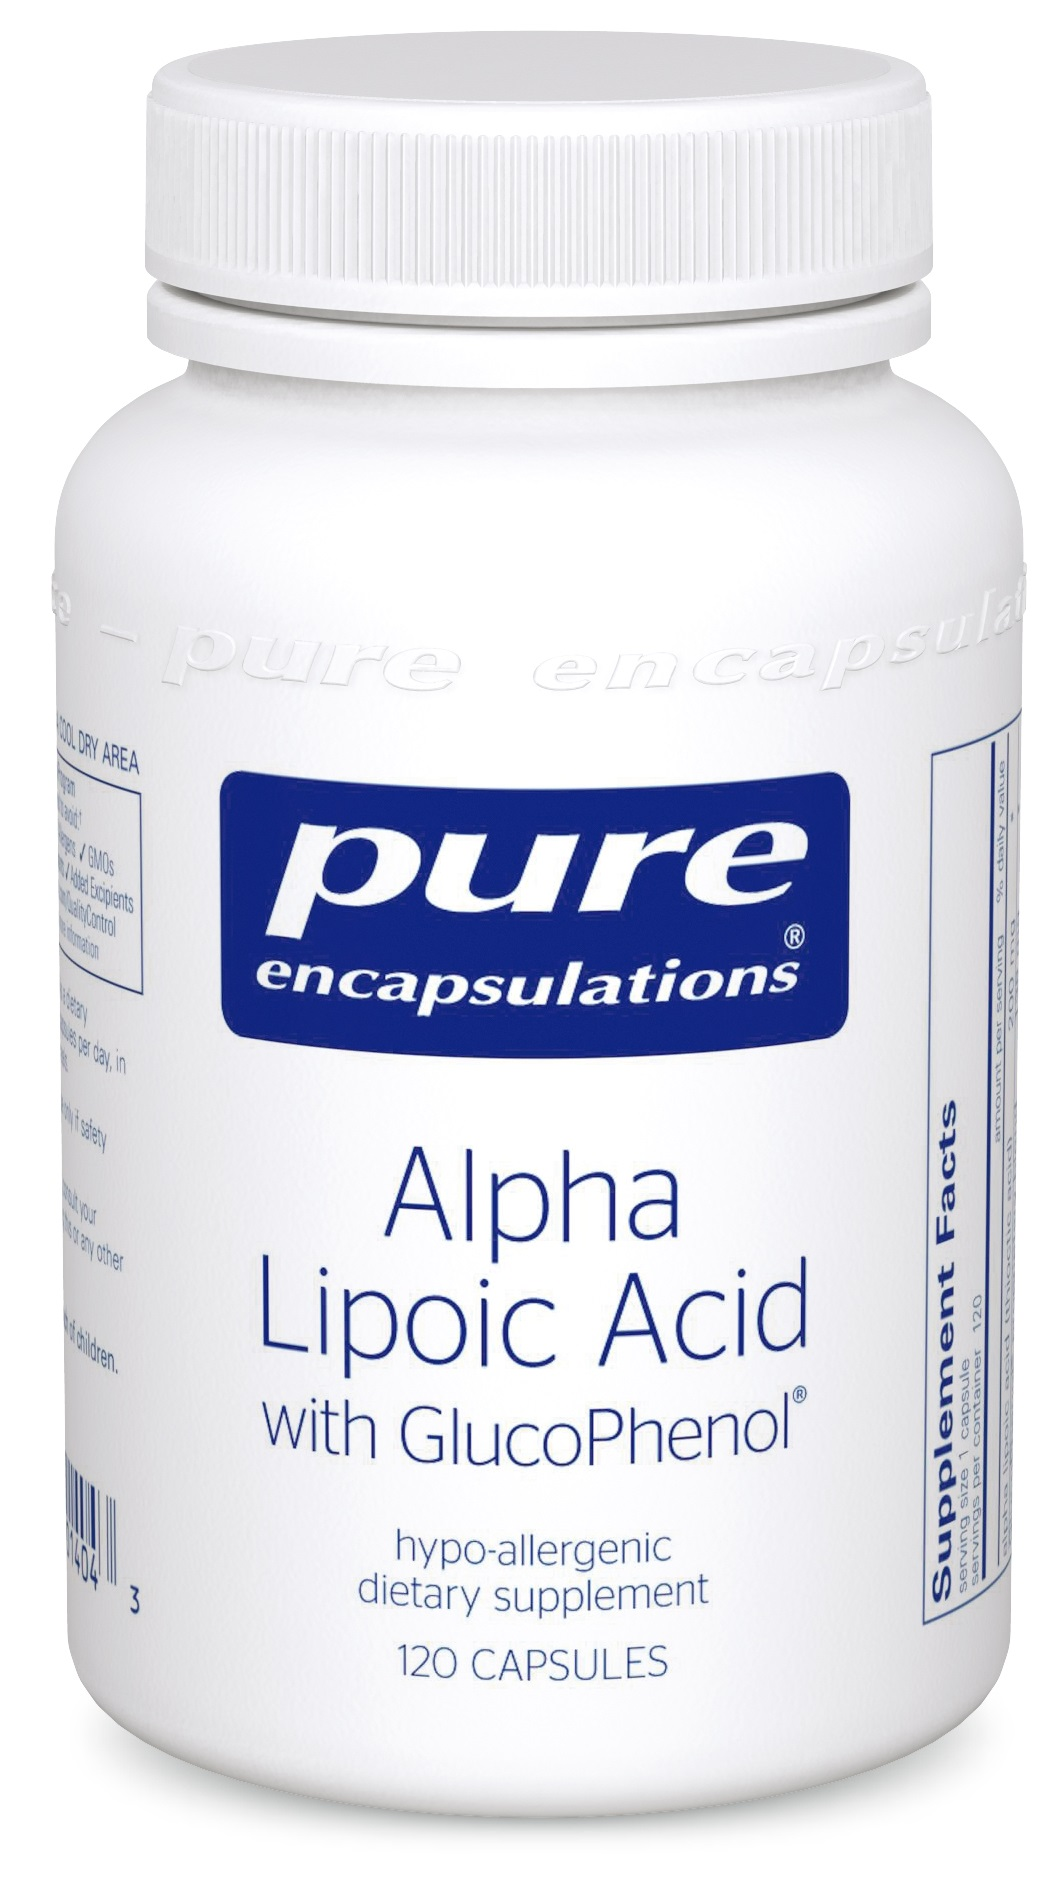 Pure Encapsulations Alpha Lipoic Acid with GlucoPhenol® 120's